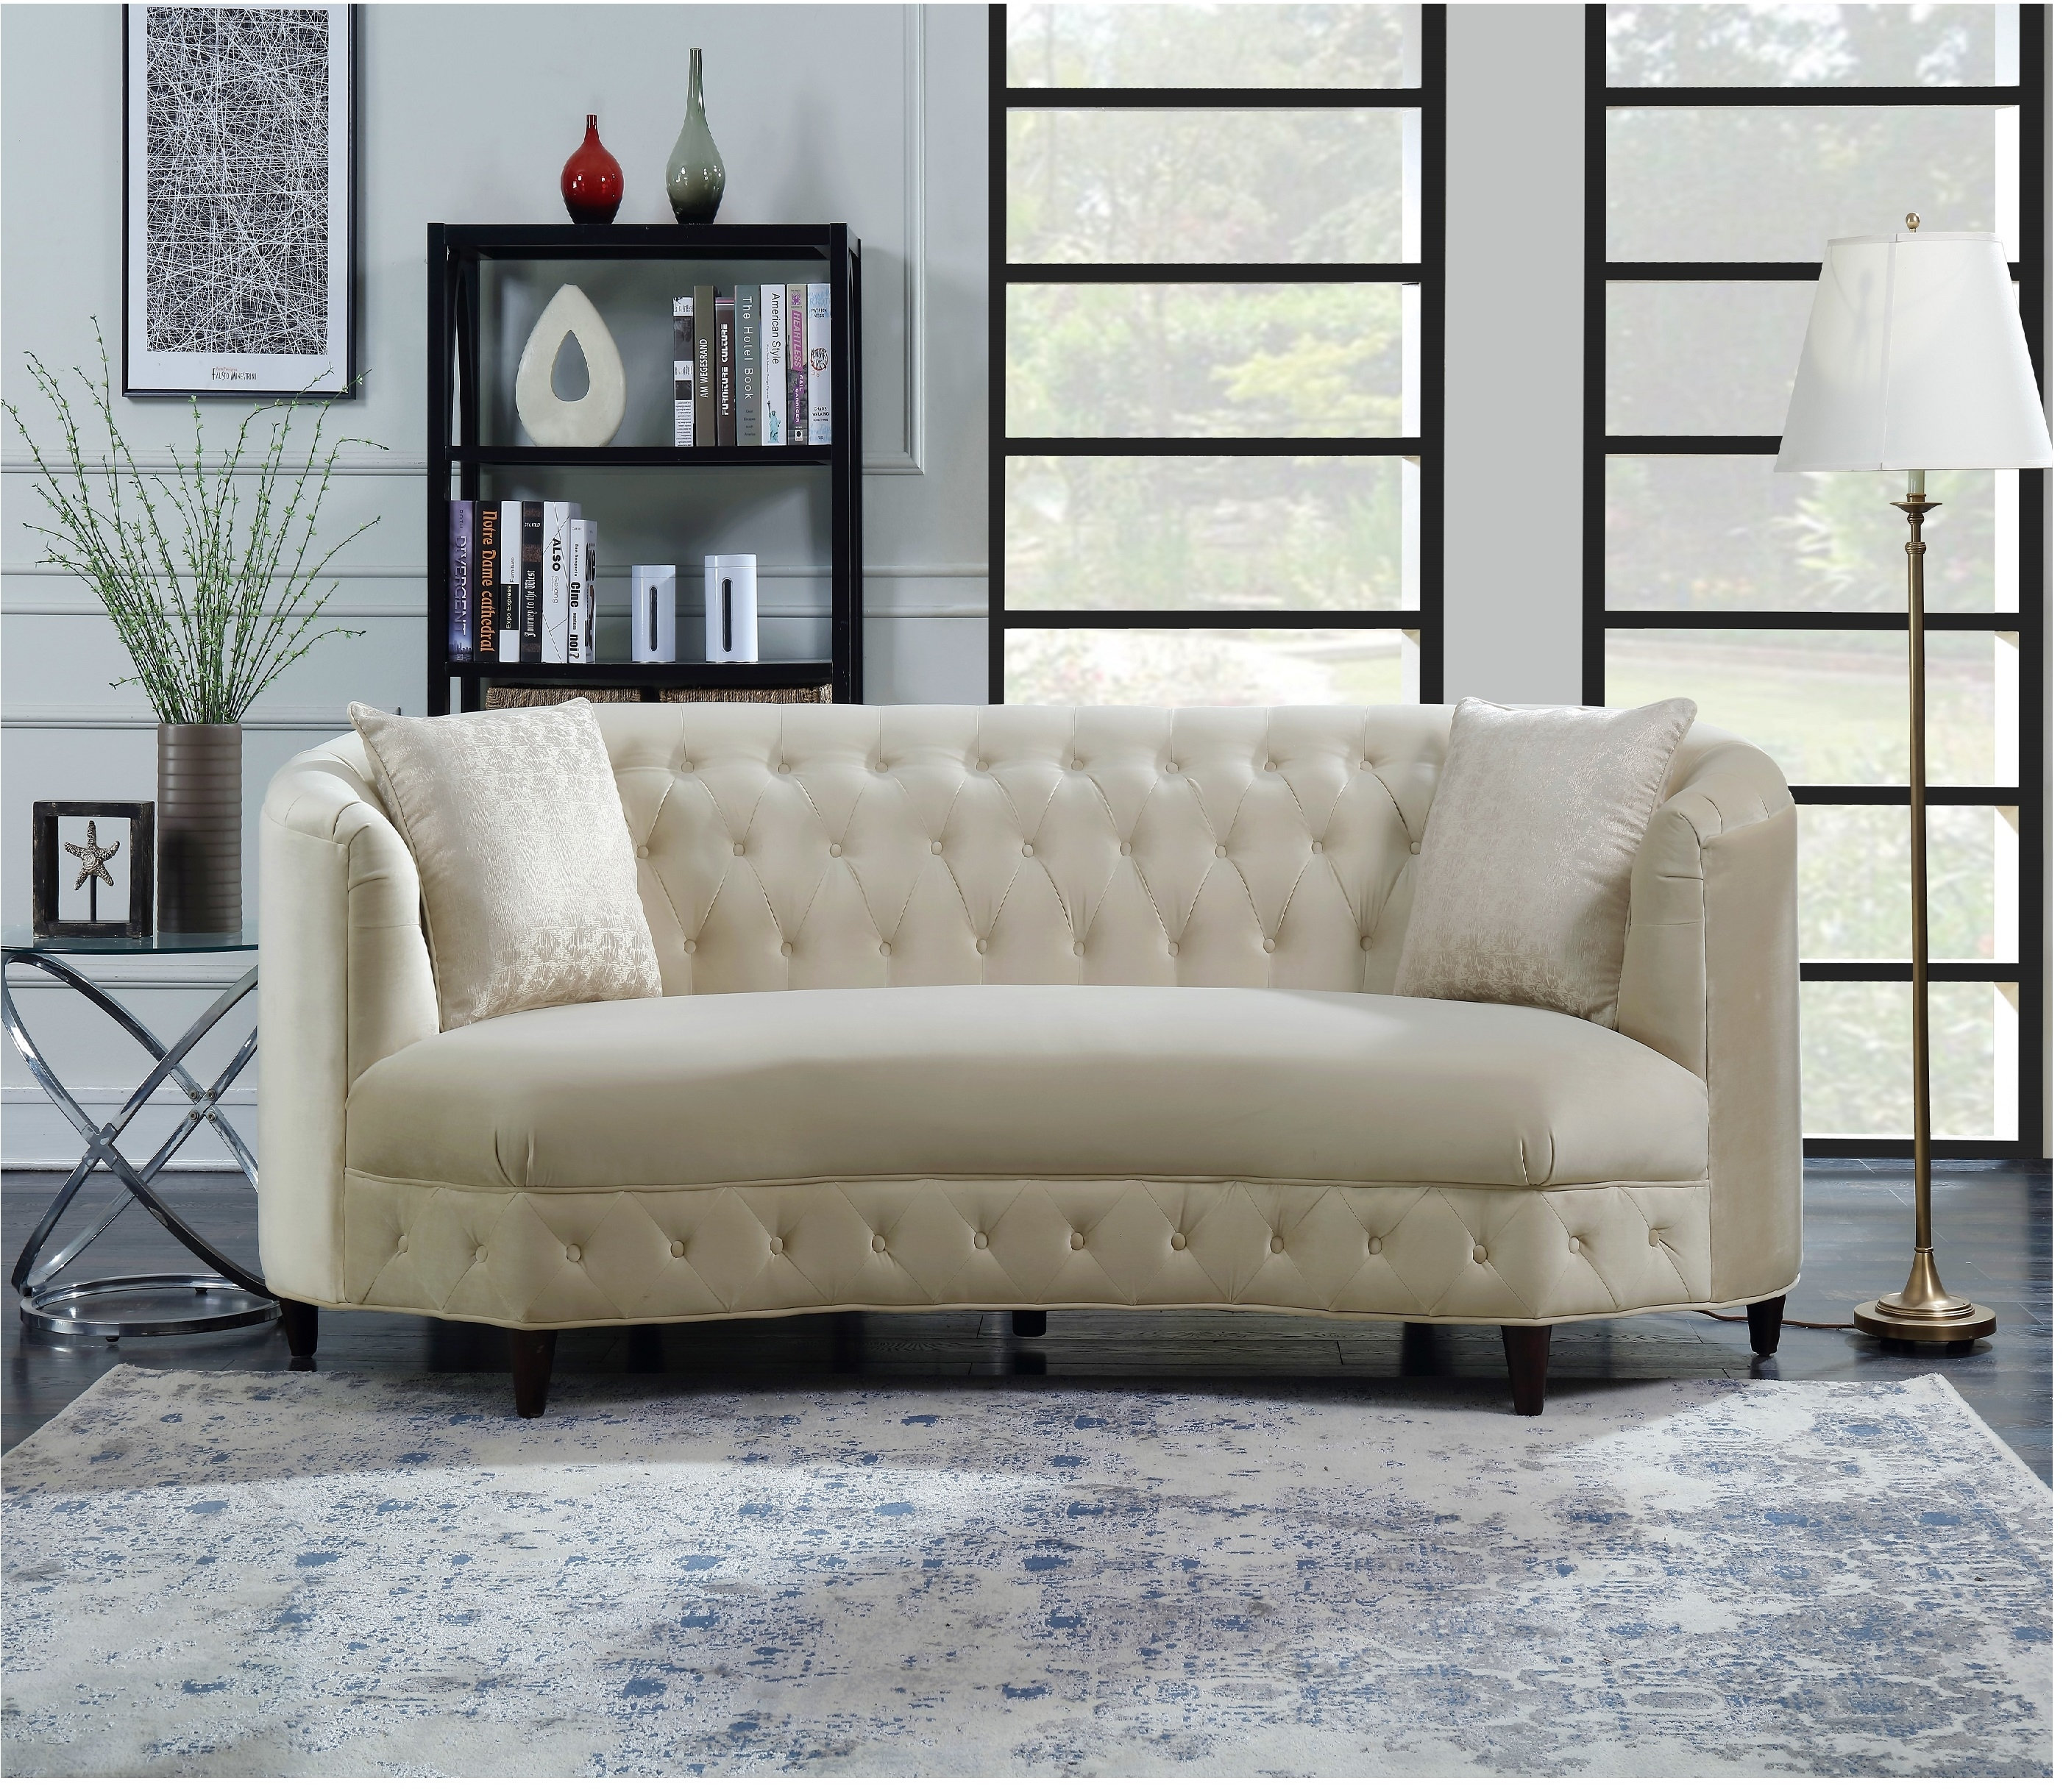 Iconic Kidney Shaped Club Sofa Accent Pillows Champagne Sassa